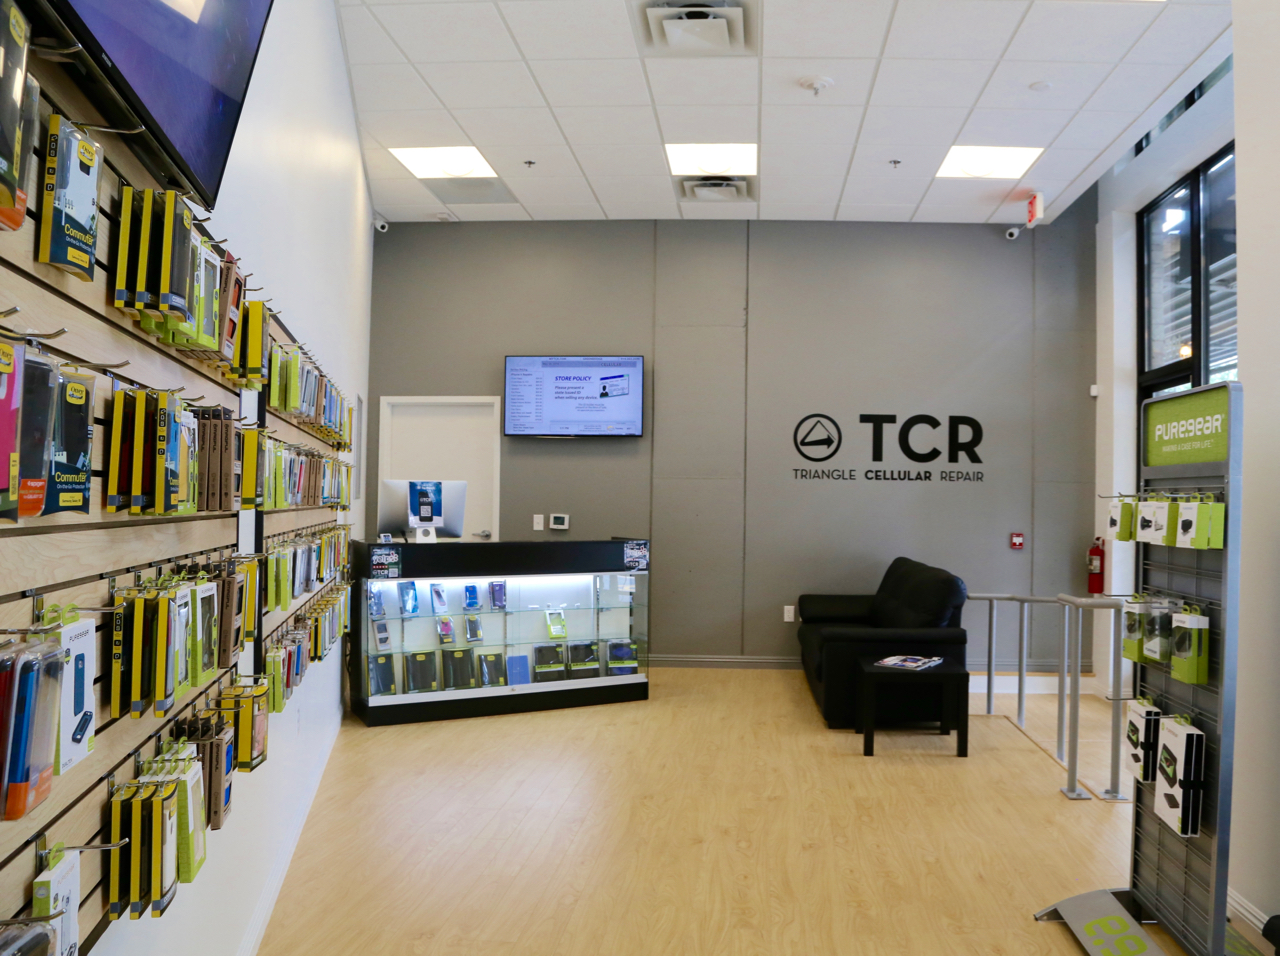 Best Cell Phone Repair in Chapel Hill, NC   TCR